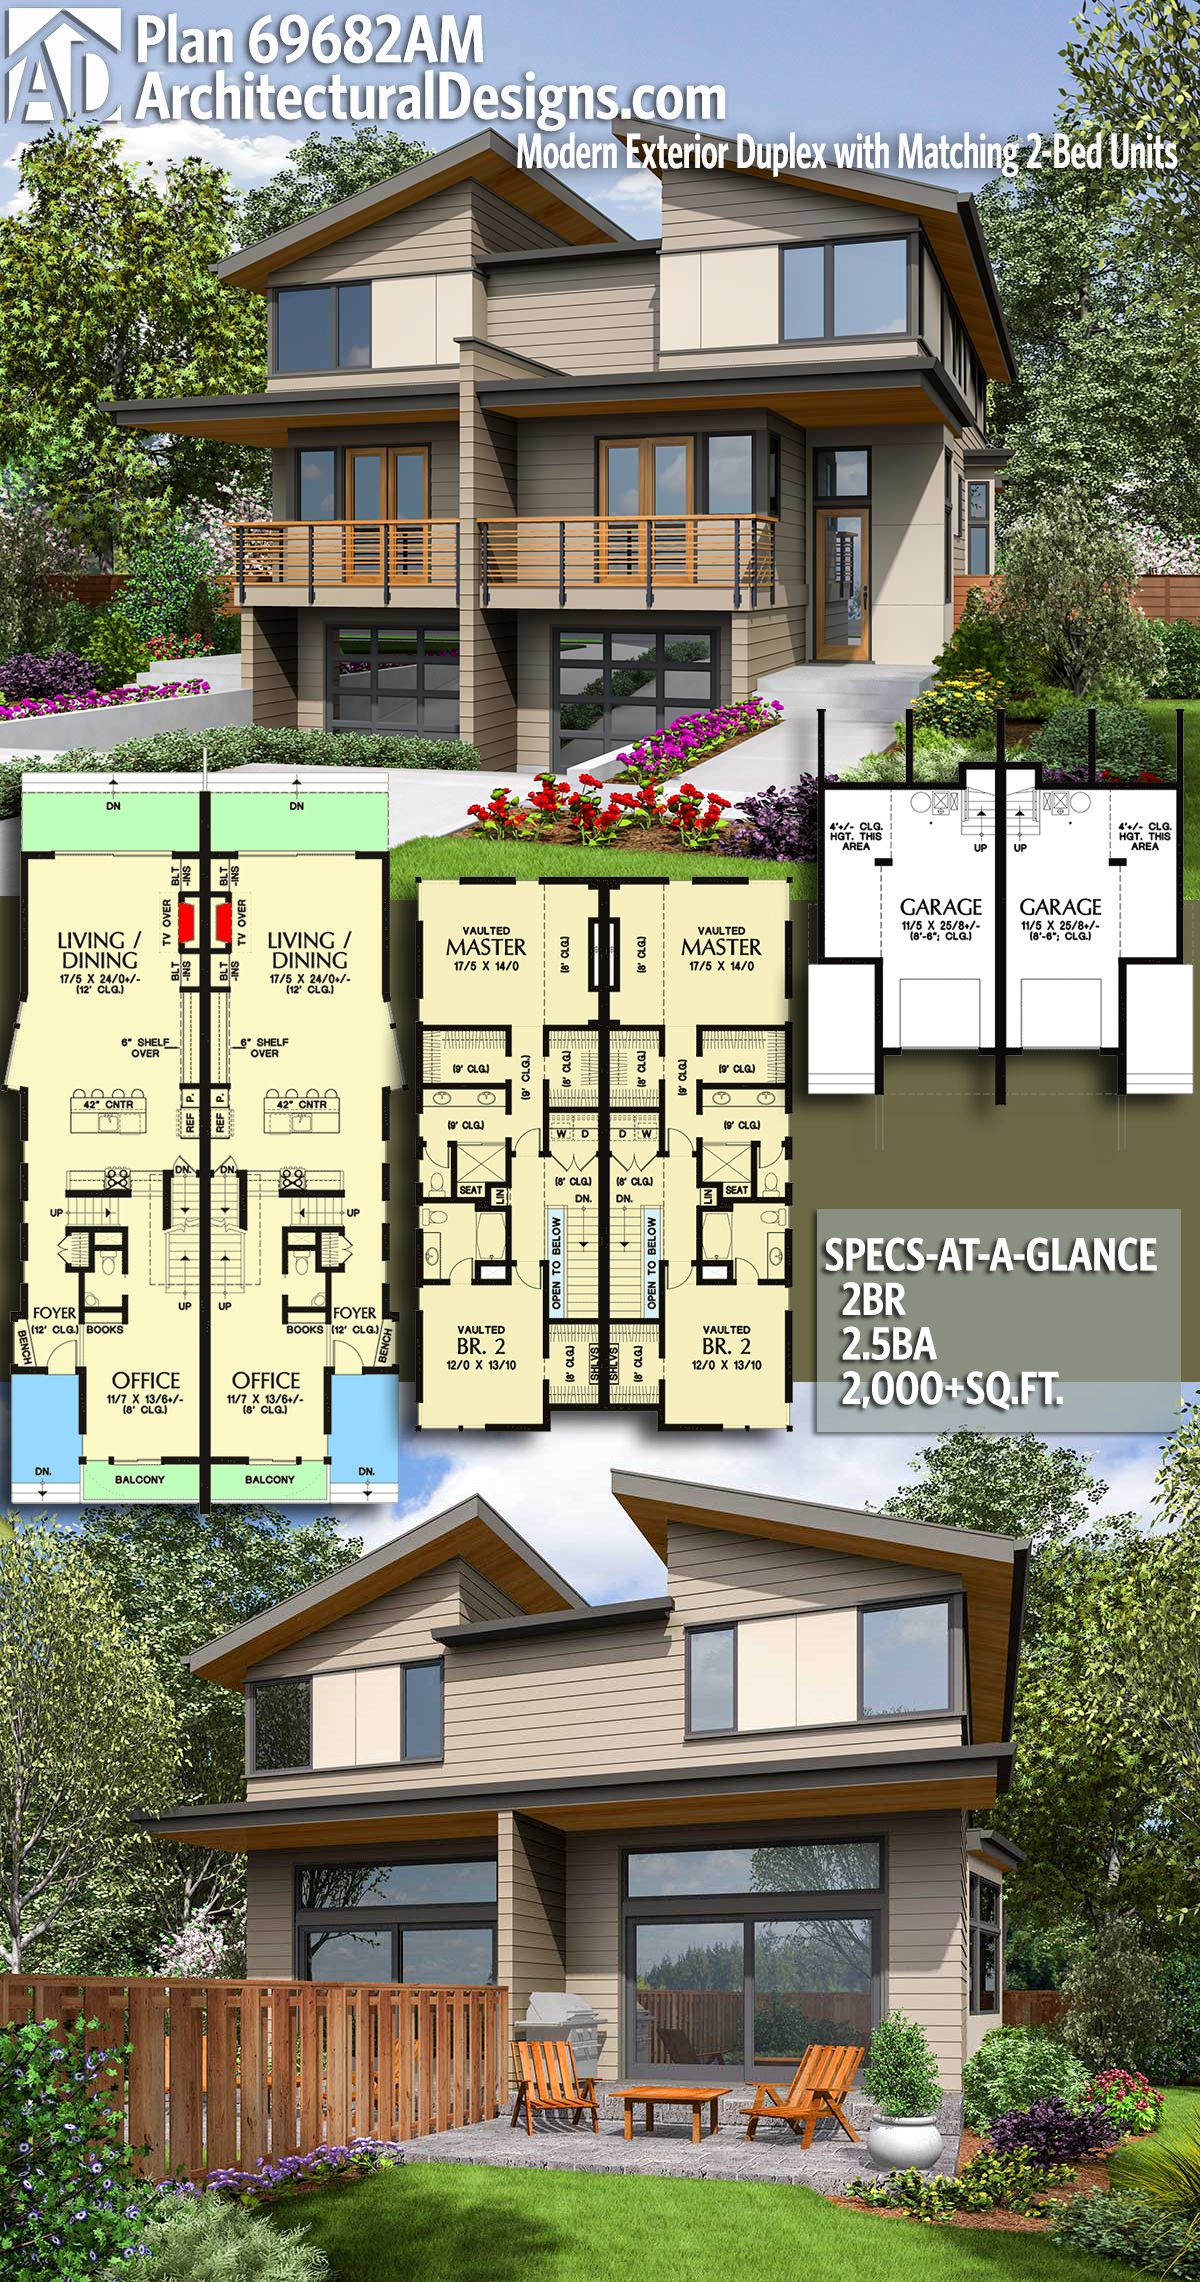 Multi Unit House Plans Plan 69682am Modern Exterior Duplex With Matching 2 Bed Units In